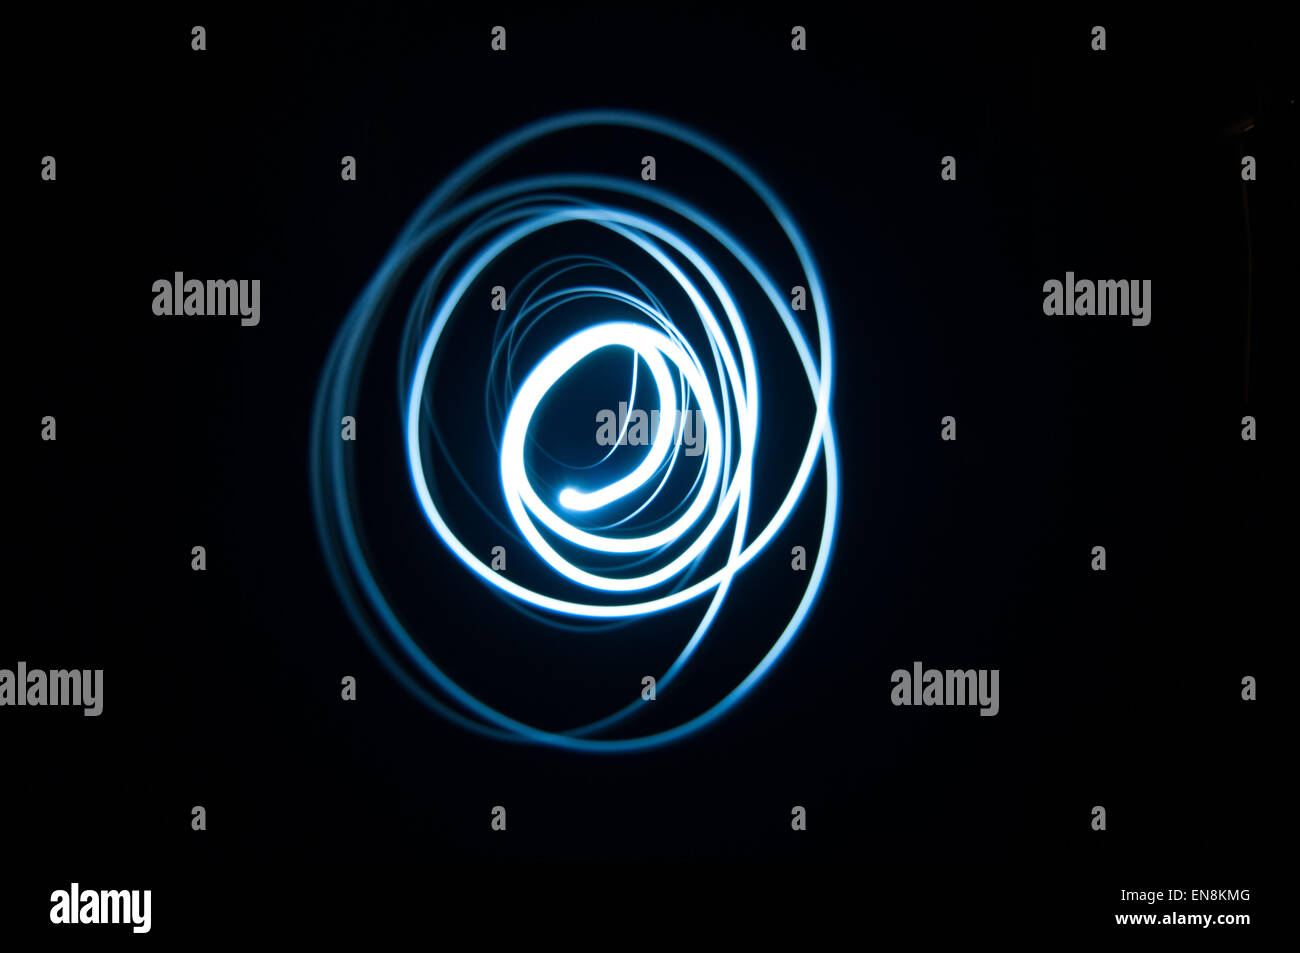 Light trails photography with long exposure technique. Photograph representing irregular light circles - Stock Image